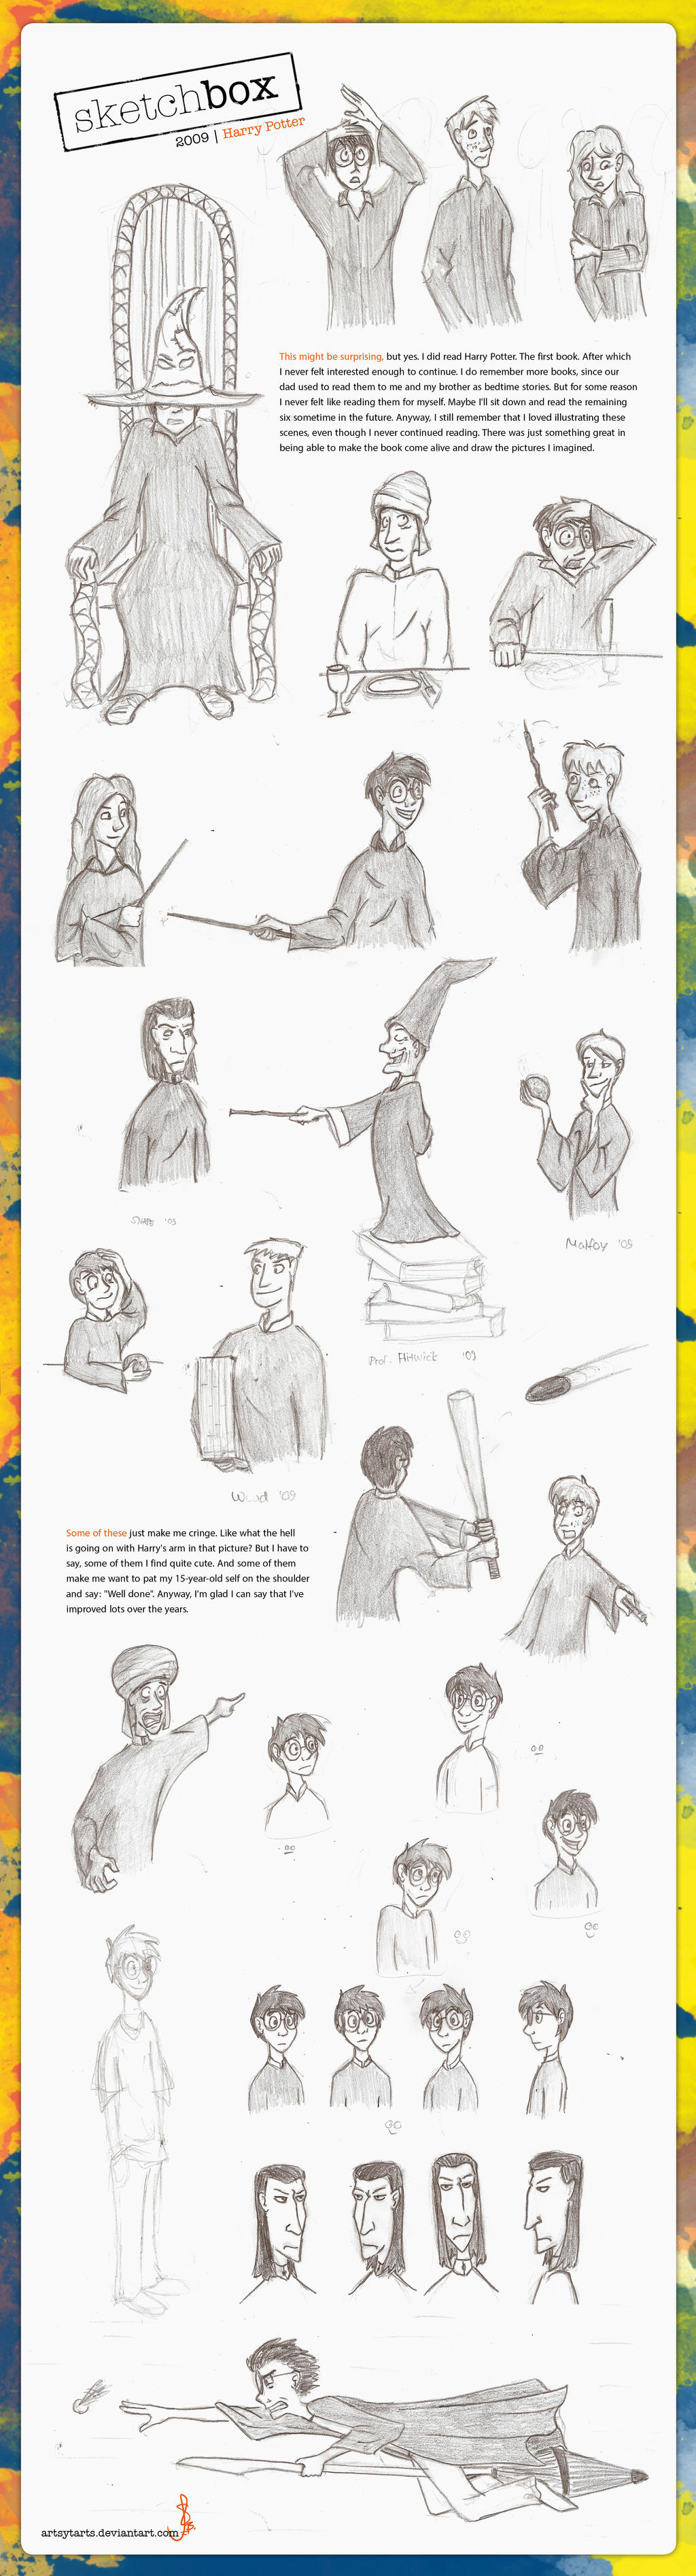 Sketchbox4 2009 Harry Potter by artsytarts